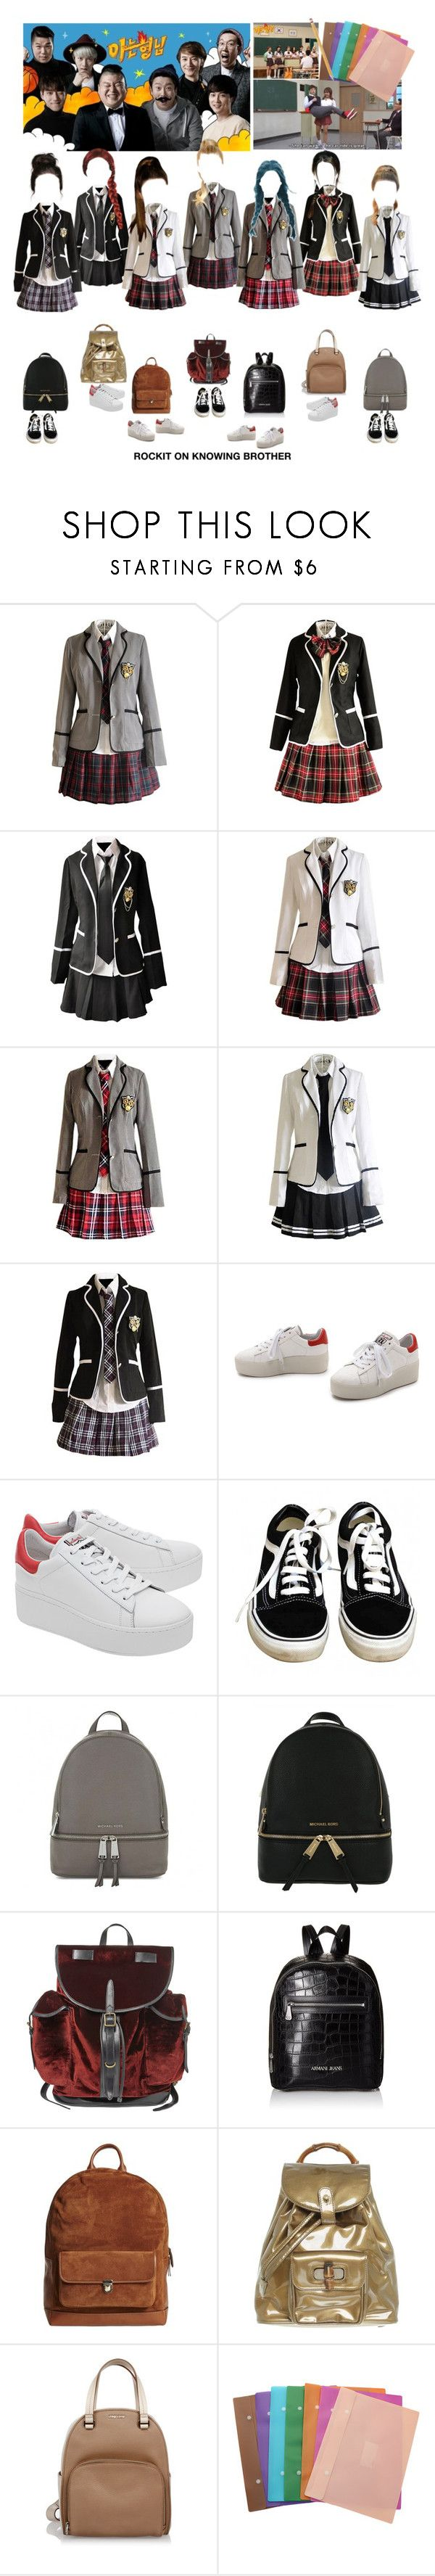 """«KNOWING BROTHER» ROCKIT [BLAST OFF DEBUT]"" by cw-entertainment ❤ liked on Polyvore featuring Ash, Vans, MICHAEL Michael Kors, Dries Van Noten, Armani Jeans, Timo Weiland, Gucci, Miu Miu and Paper Mate"